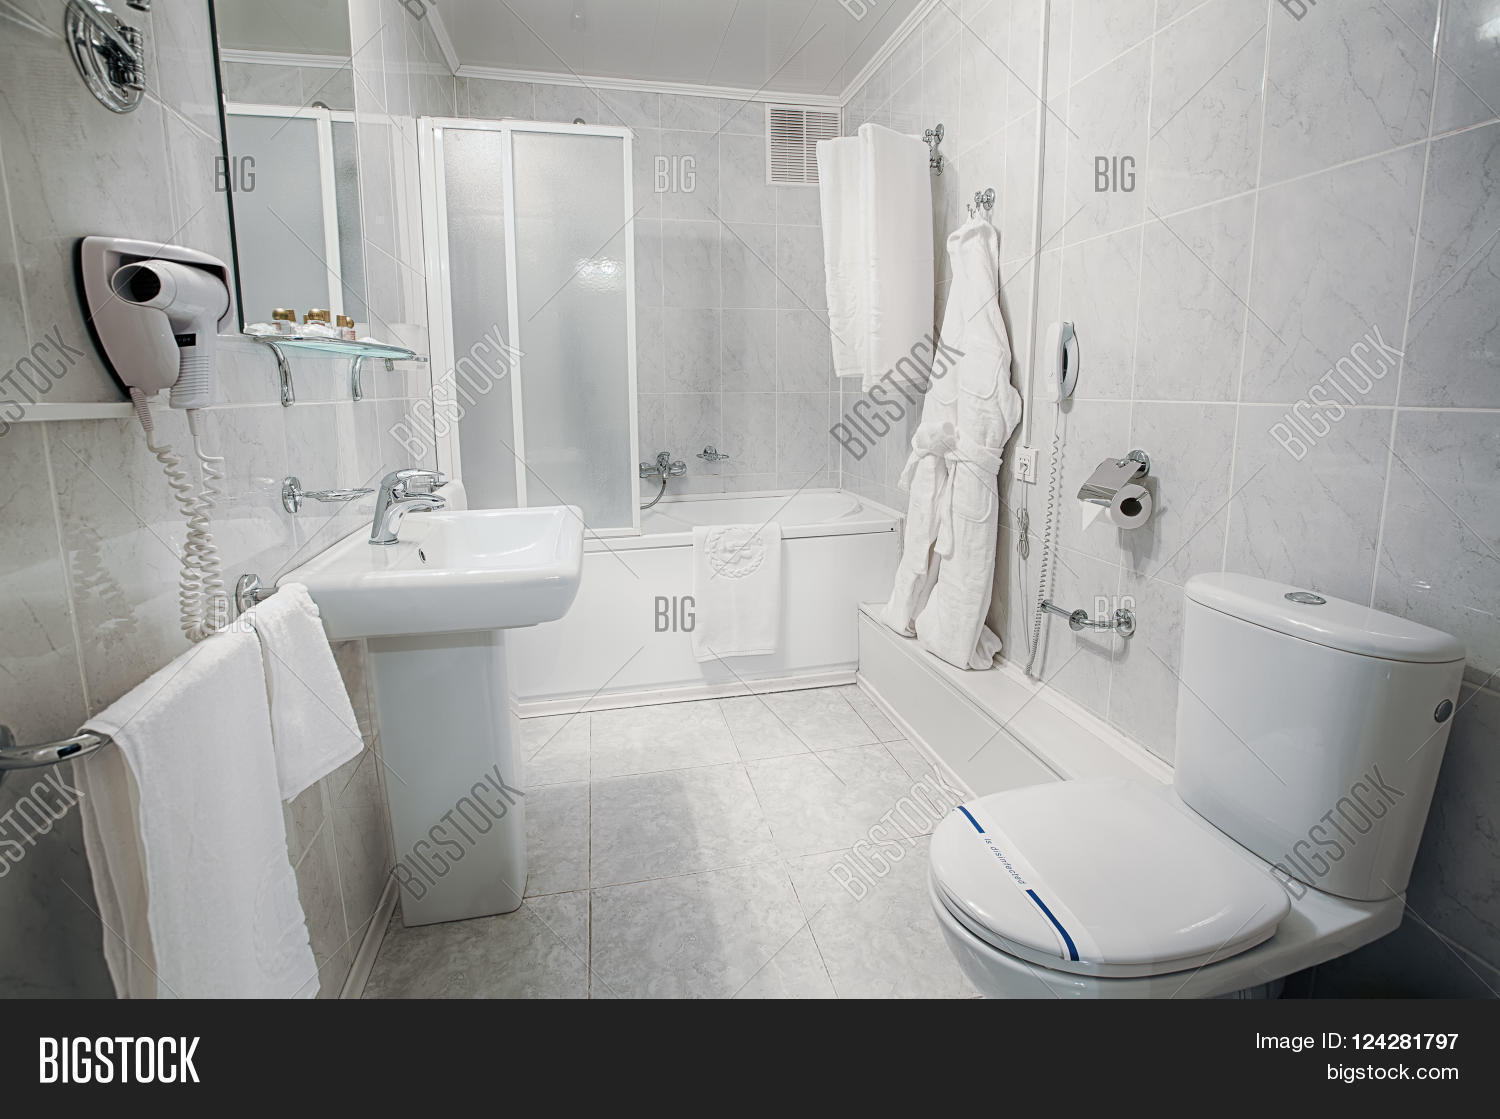 Interior design hotel bathroom image photo bigstock for Clean bathroom designs